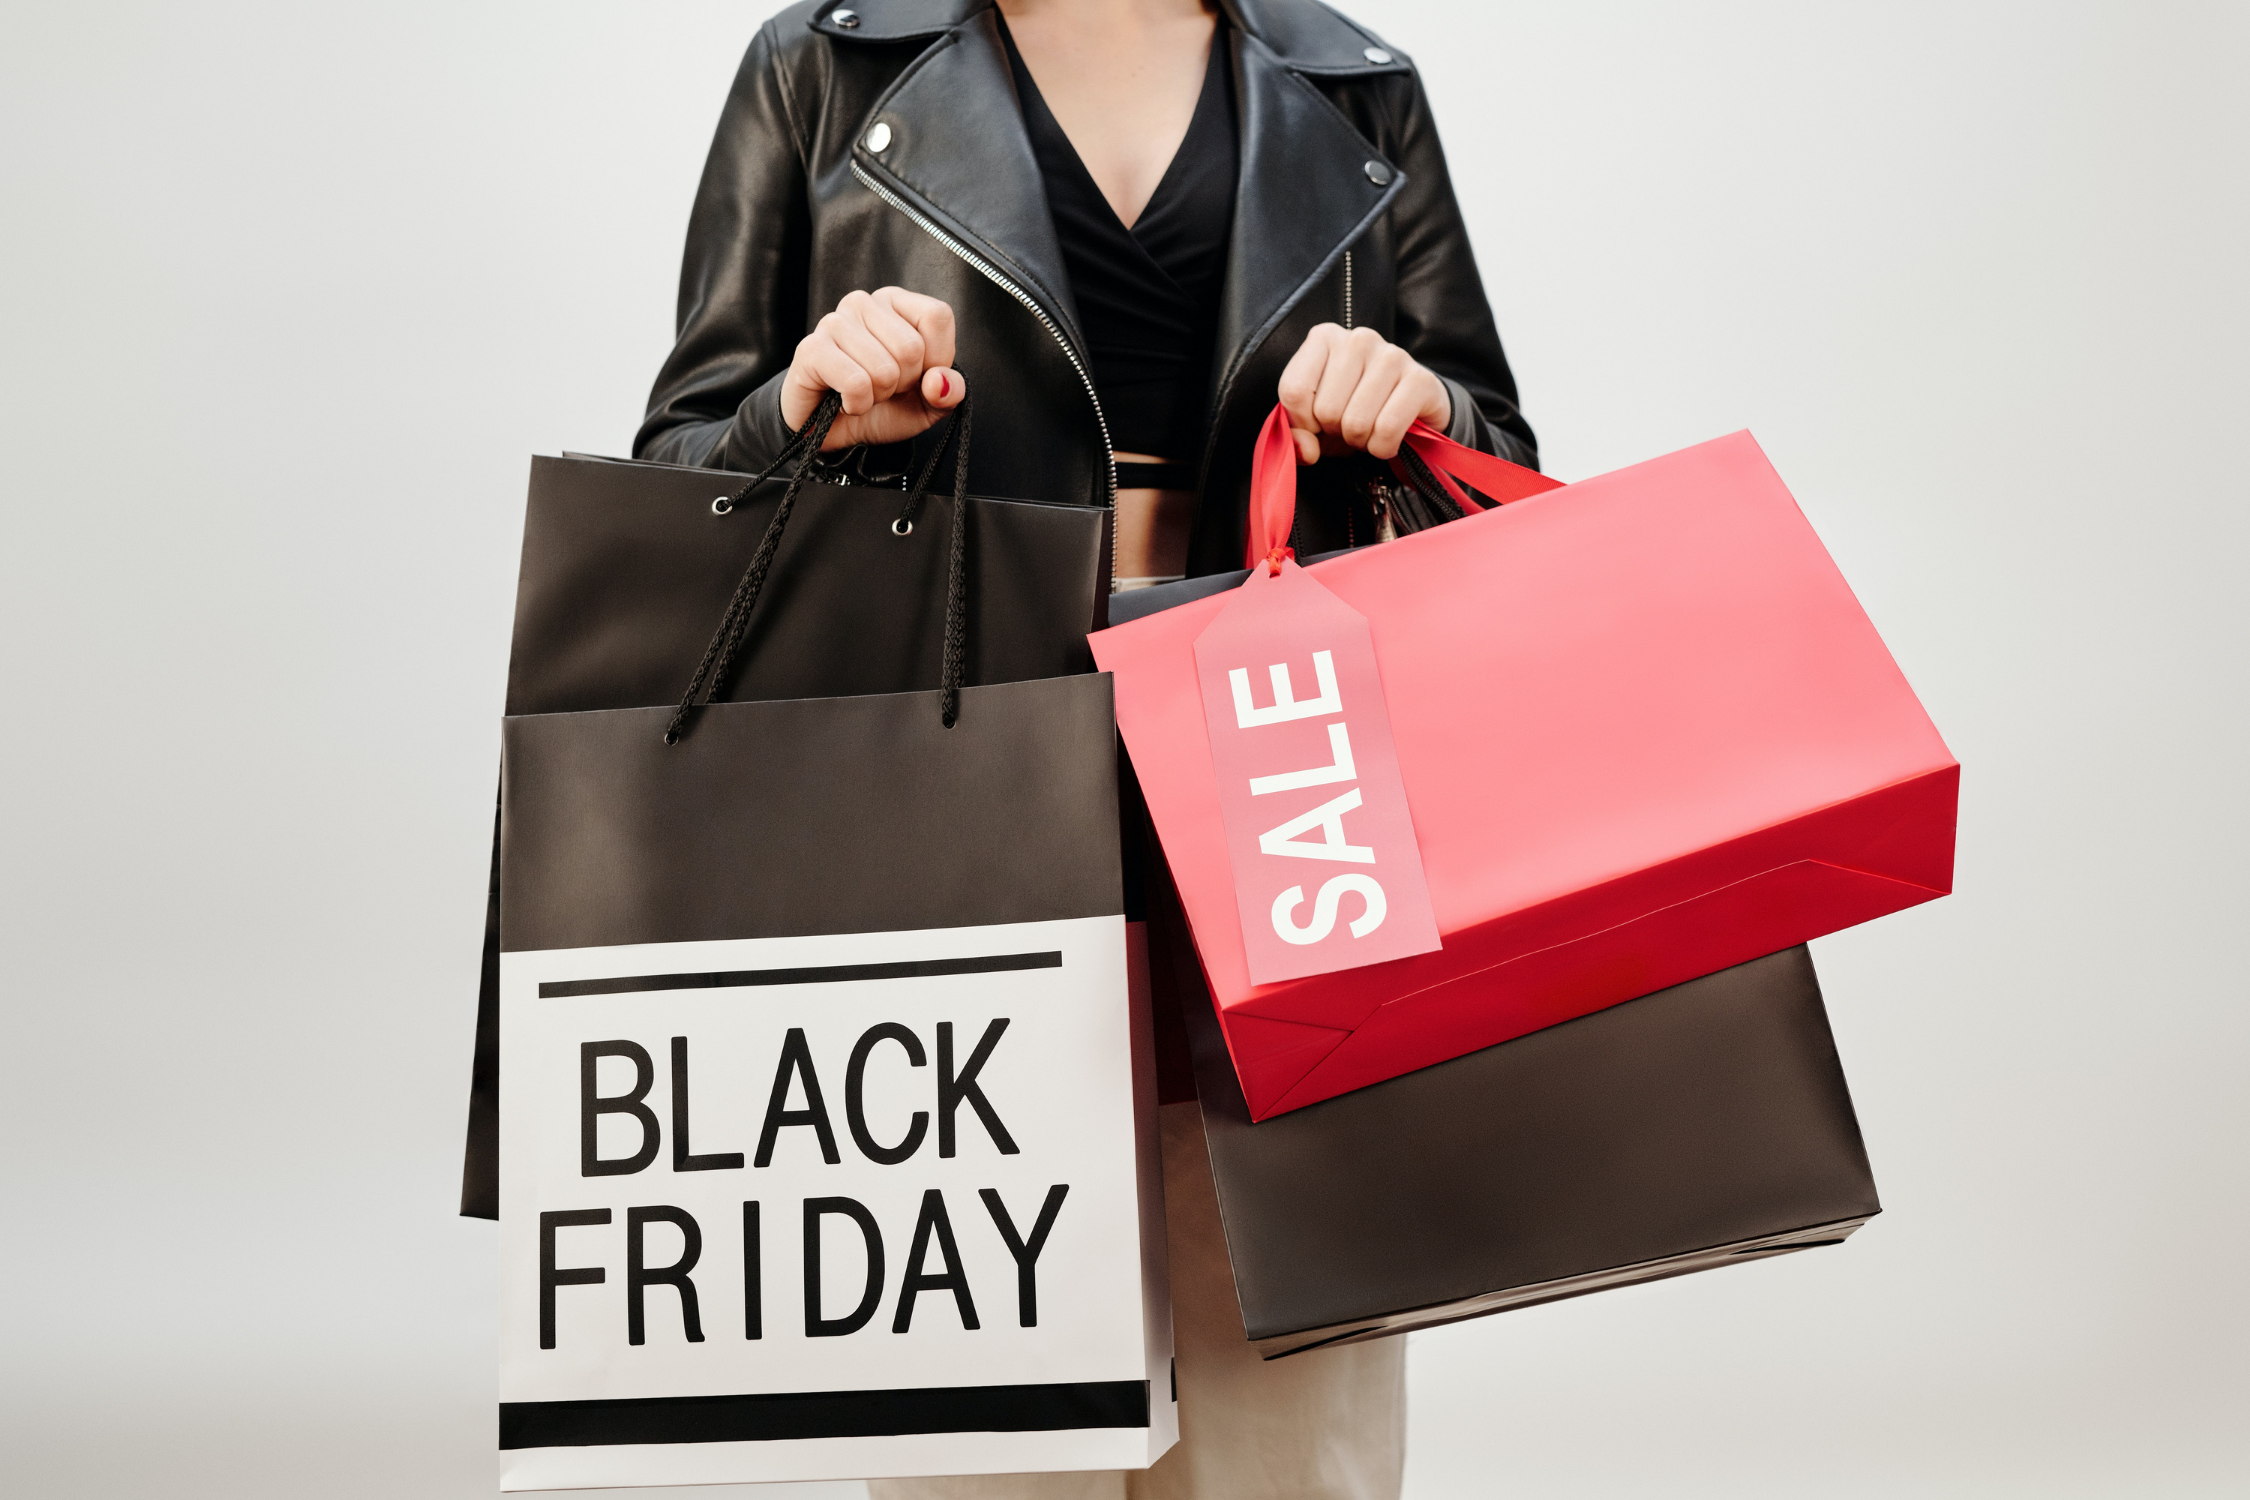 Making the most of high intent searches on Black Friday